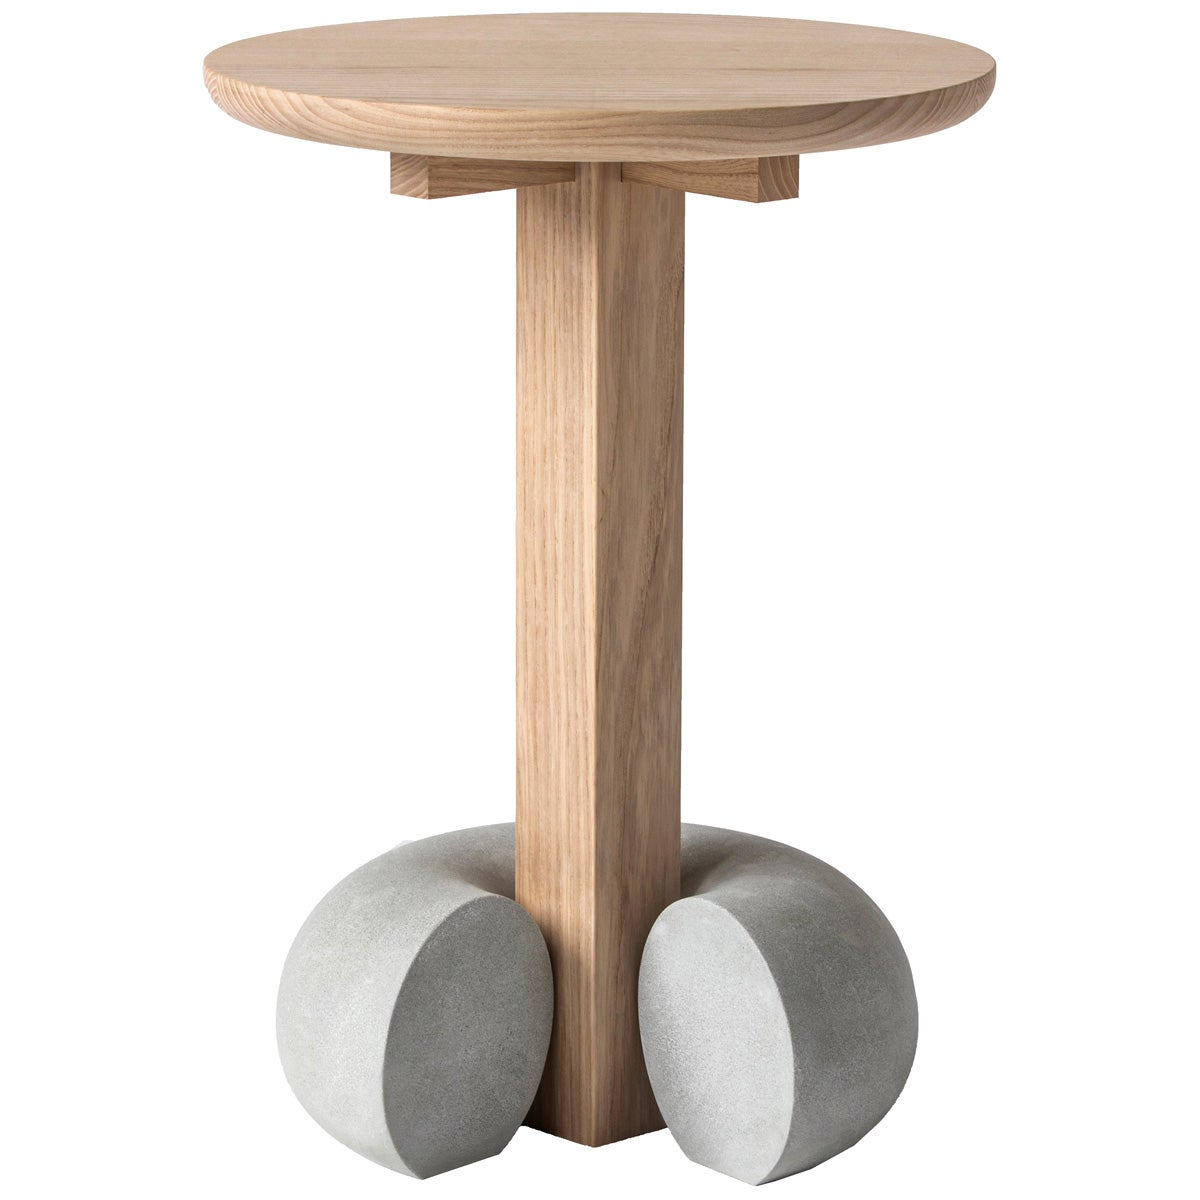 Poise Contemporary Stool Table in Solid Ash Hardwood and Concrete by Desmond Lim